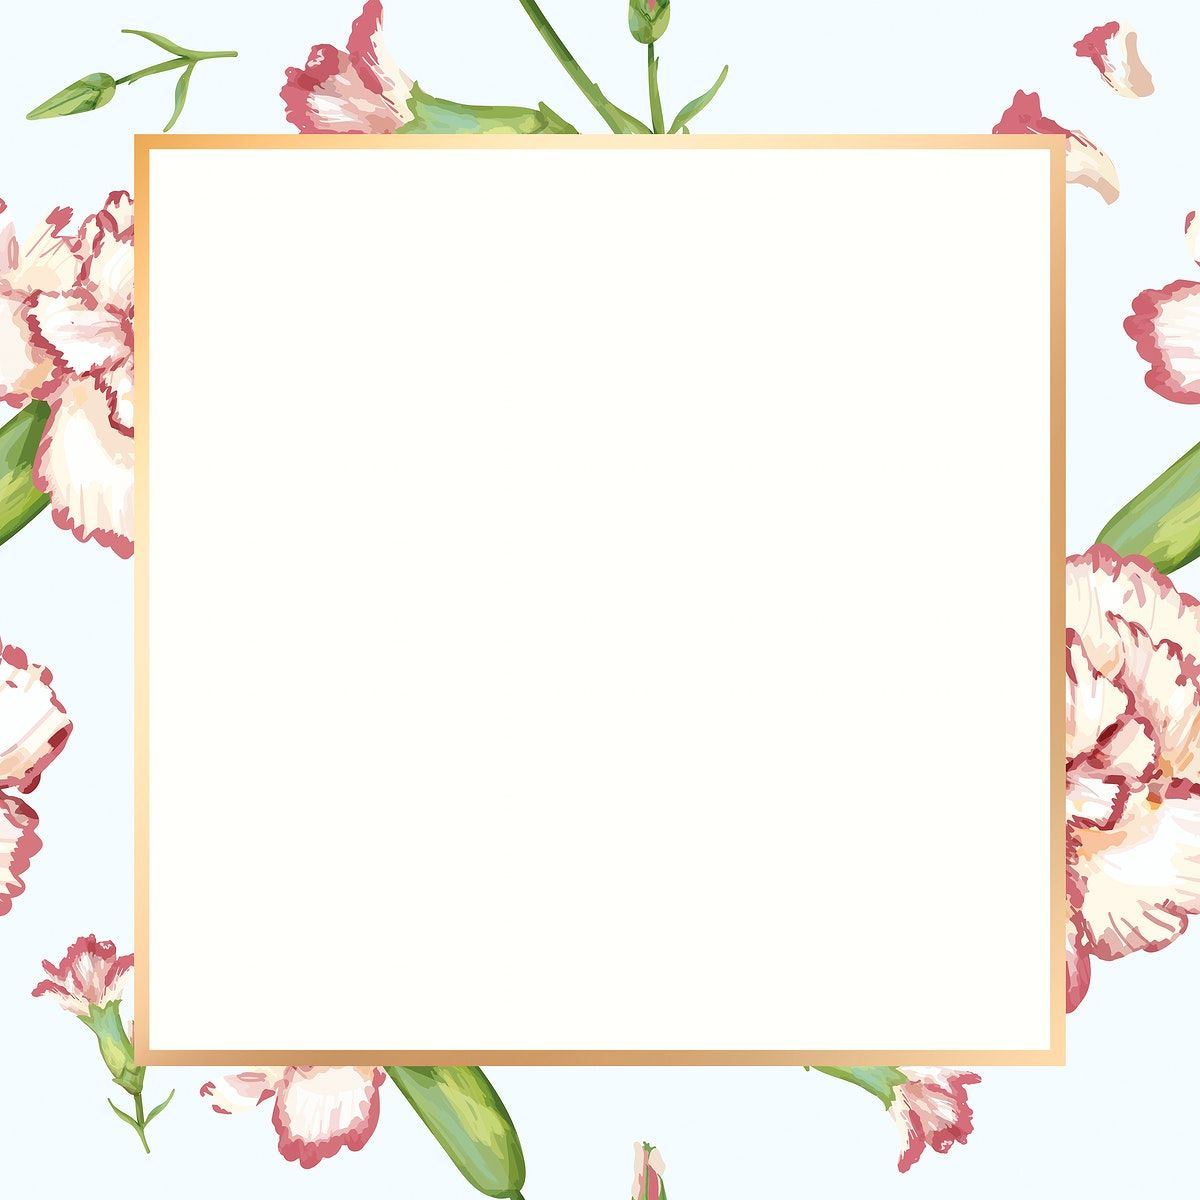 Gold Square Carnation Flower Frame Design Resource Free Image By Rawpixel Com Paeng In 2020 Flower Frame Carnation Flower Frame Design